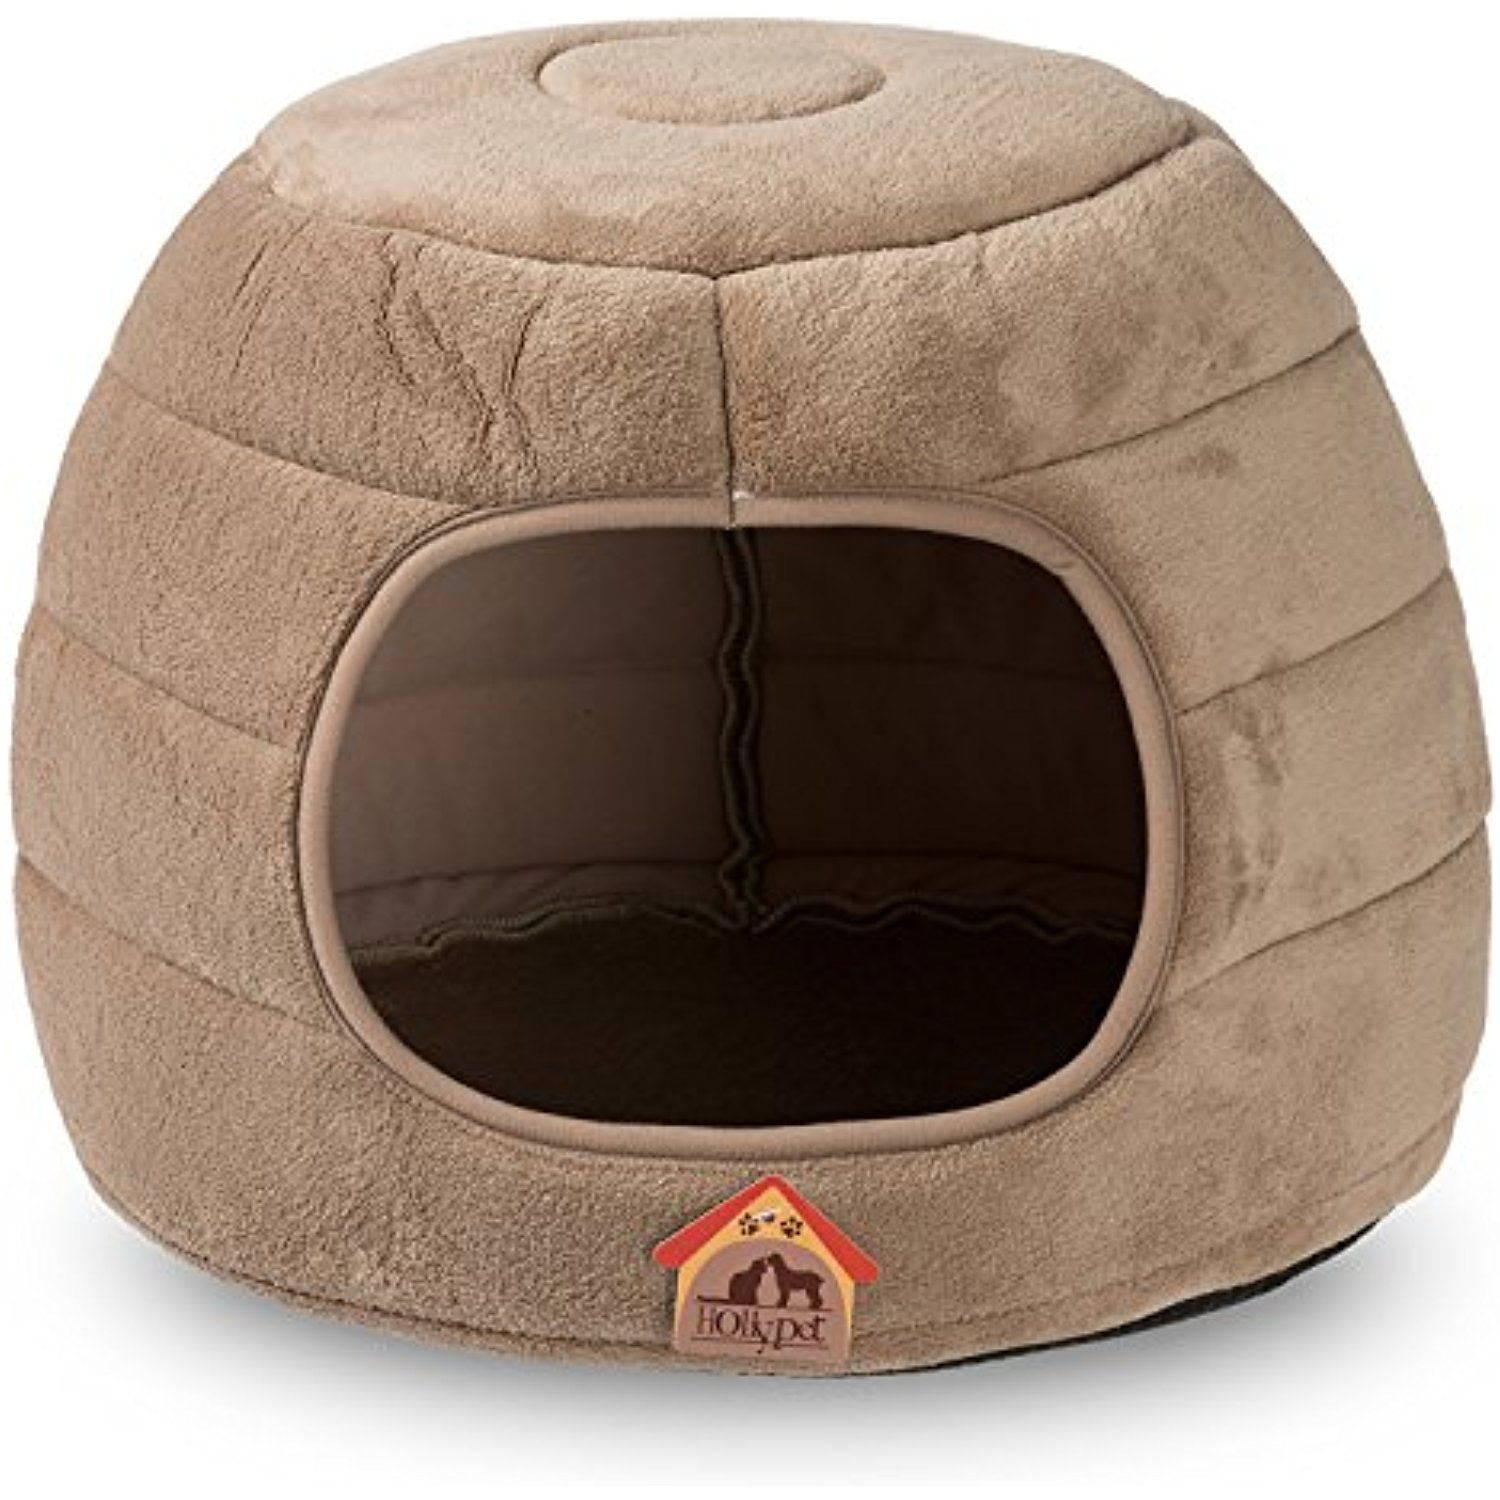 Hollypet 16 A 16 A 12 5 Coral Velvet Self Warming 2 In 1 Foldable Cave Shape High Elastic Foam Pet Cat Bed For Cats And Small Dogs Dog Bed Small Dogs Cats